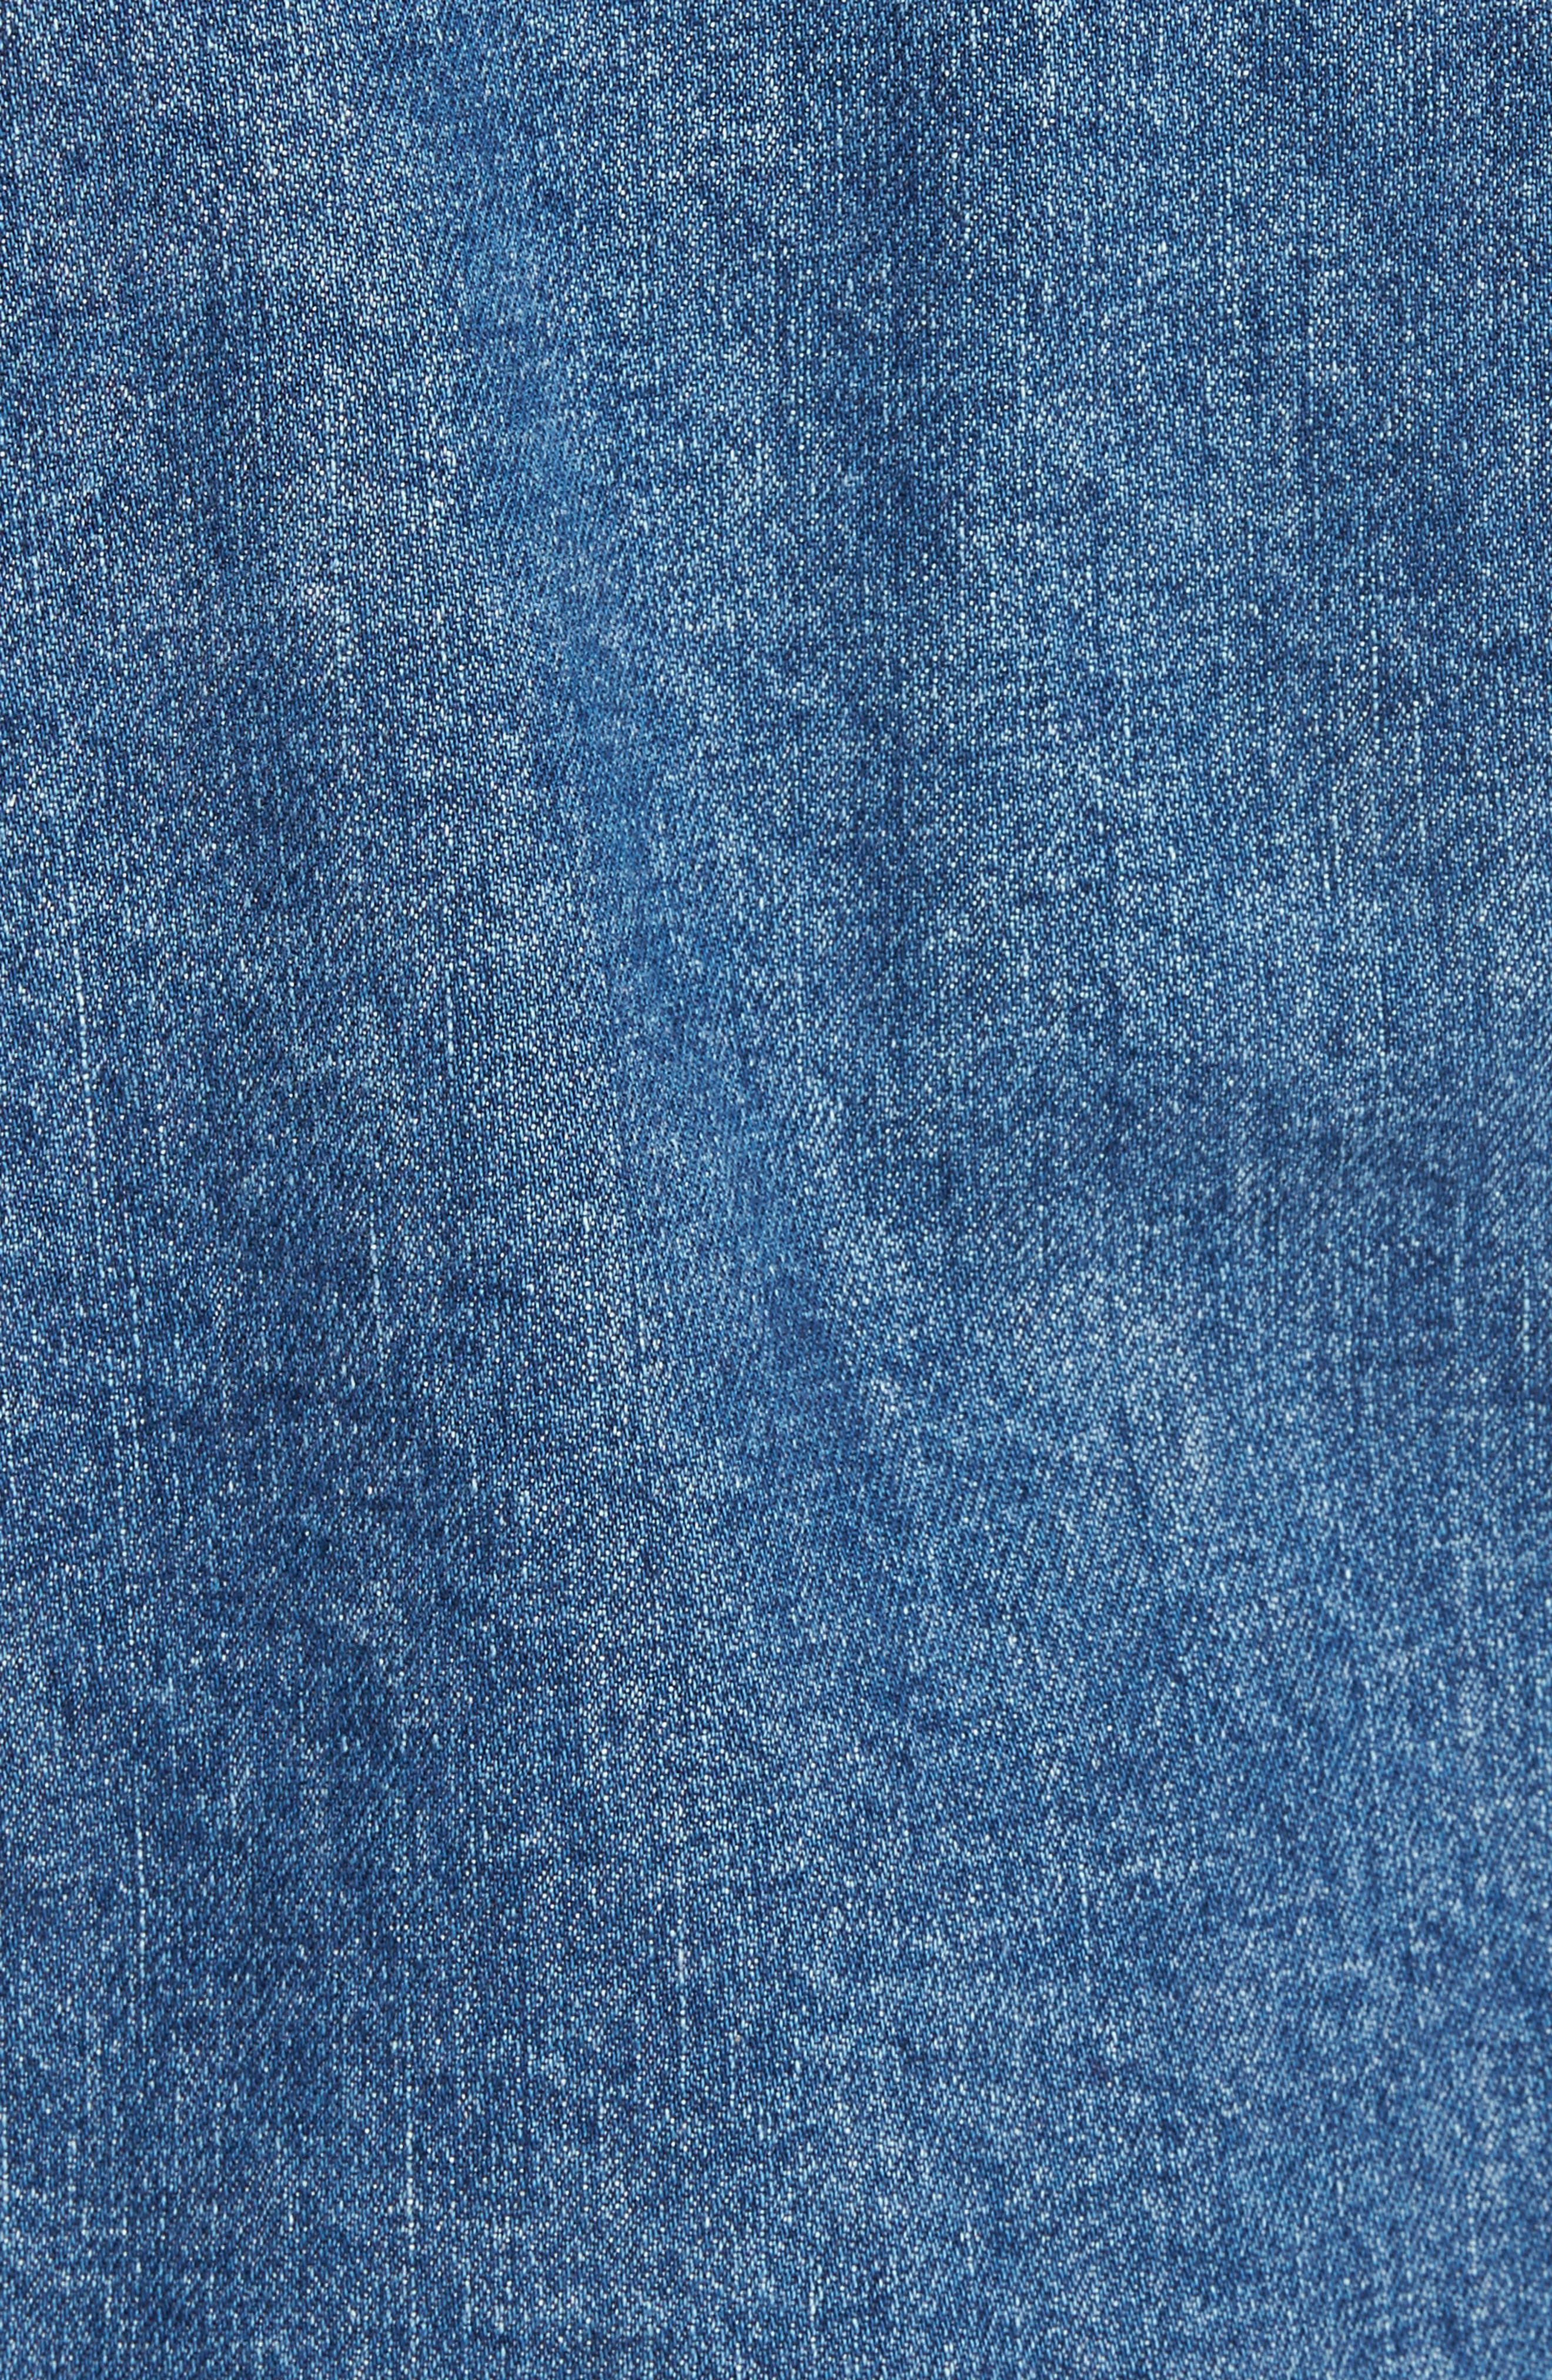 Garrison Crop Denim Jacket,                             Alternate thumbnail 5, color,                             Continuum